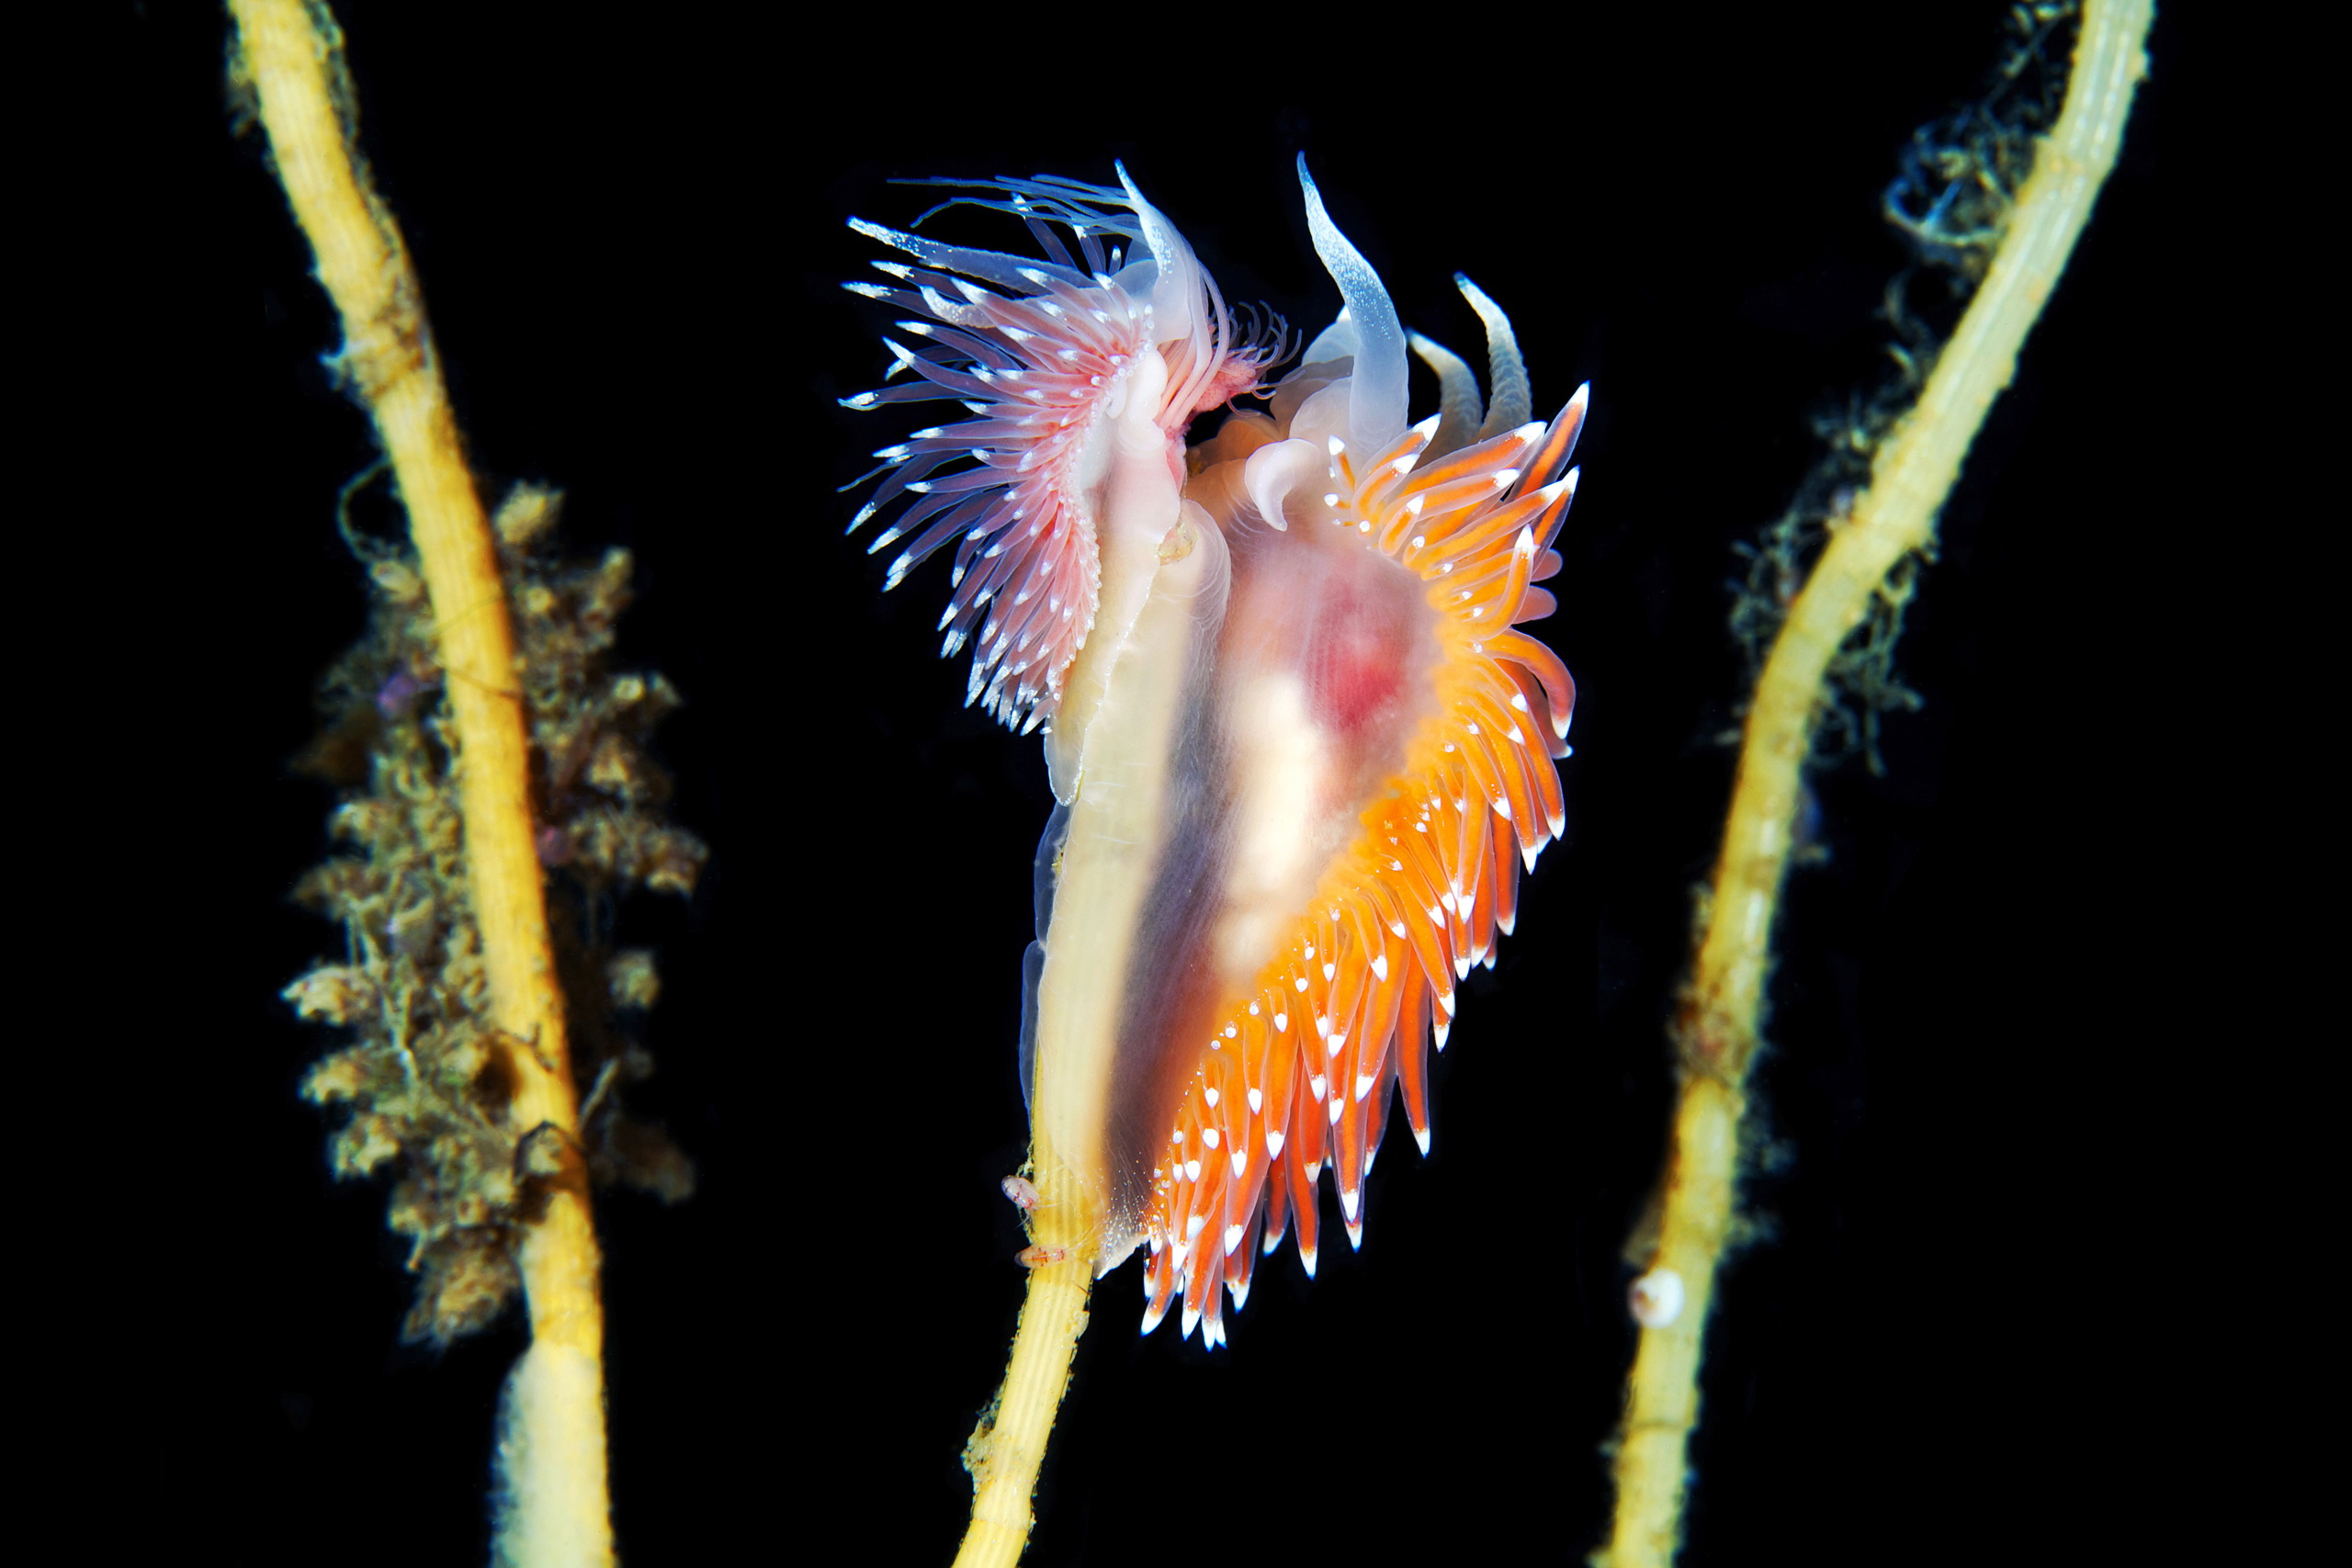 Nudibranchia – Coryphella polaris and Coryphella nobilis